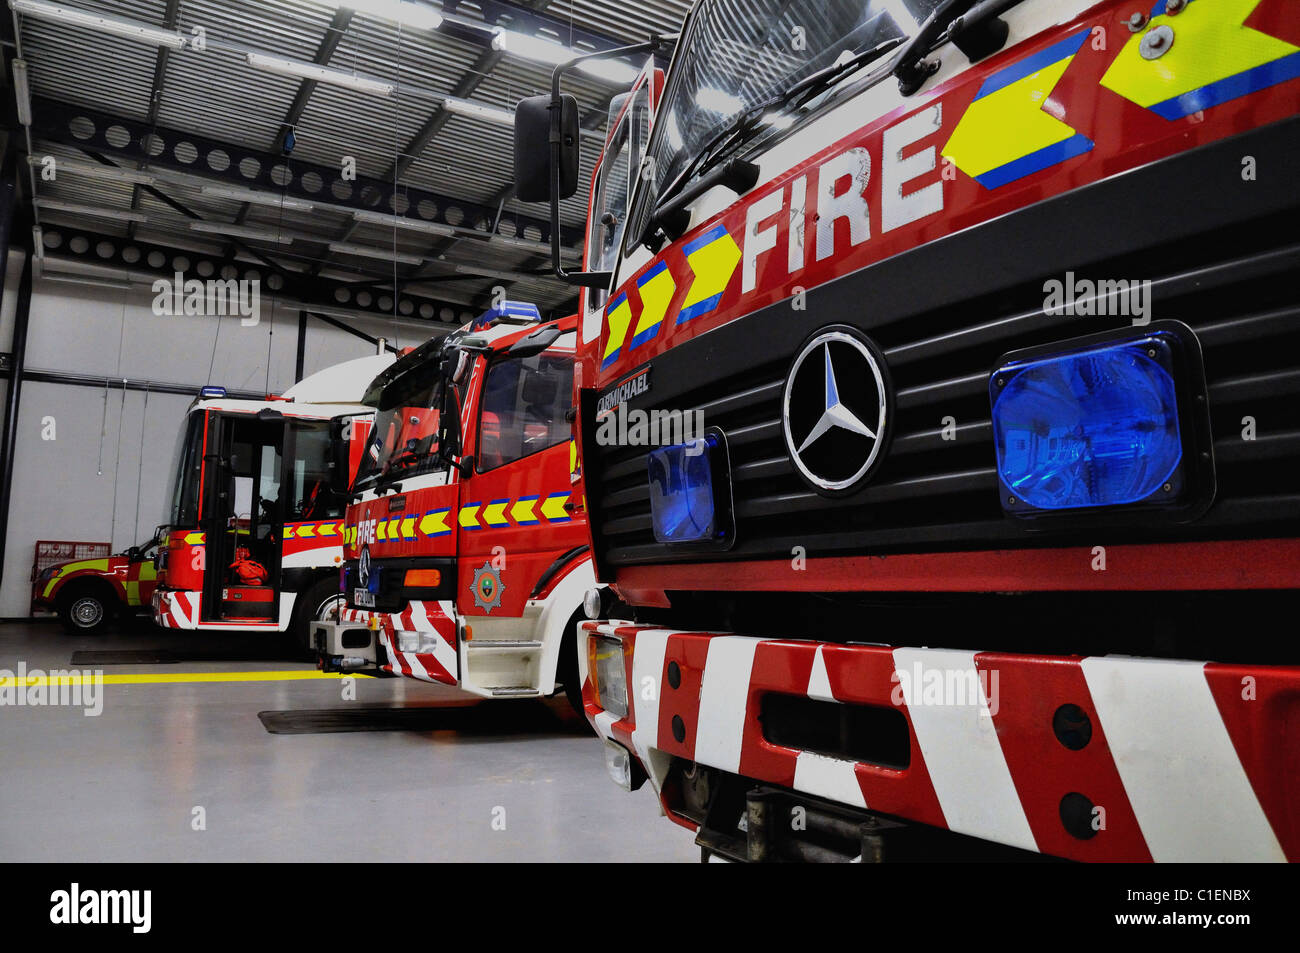 Fire Engines on station awaiting a call - Stock Image